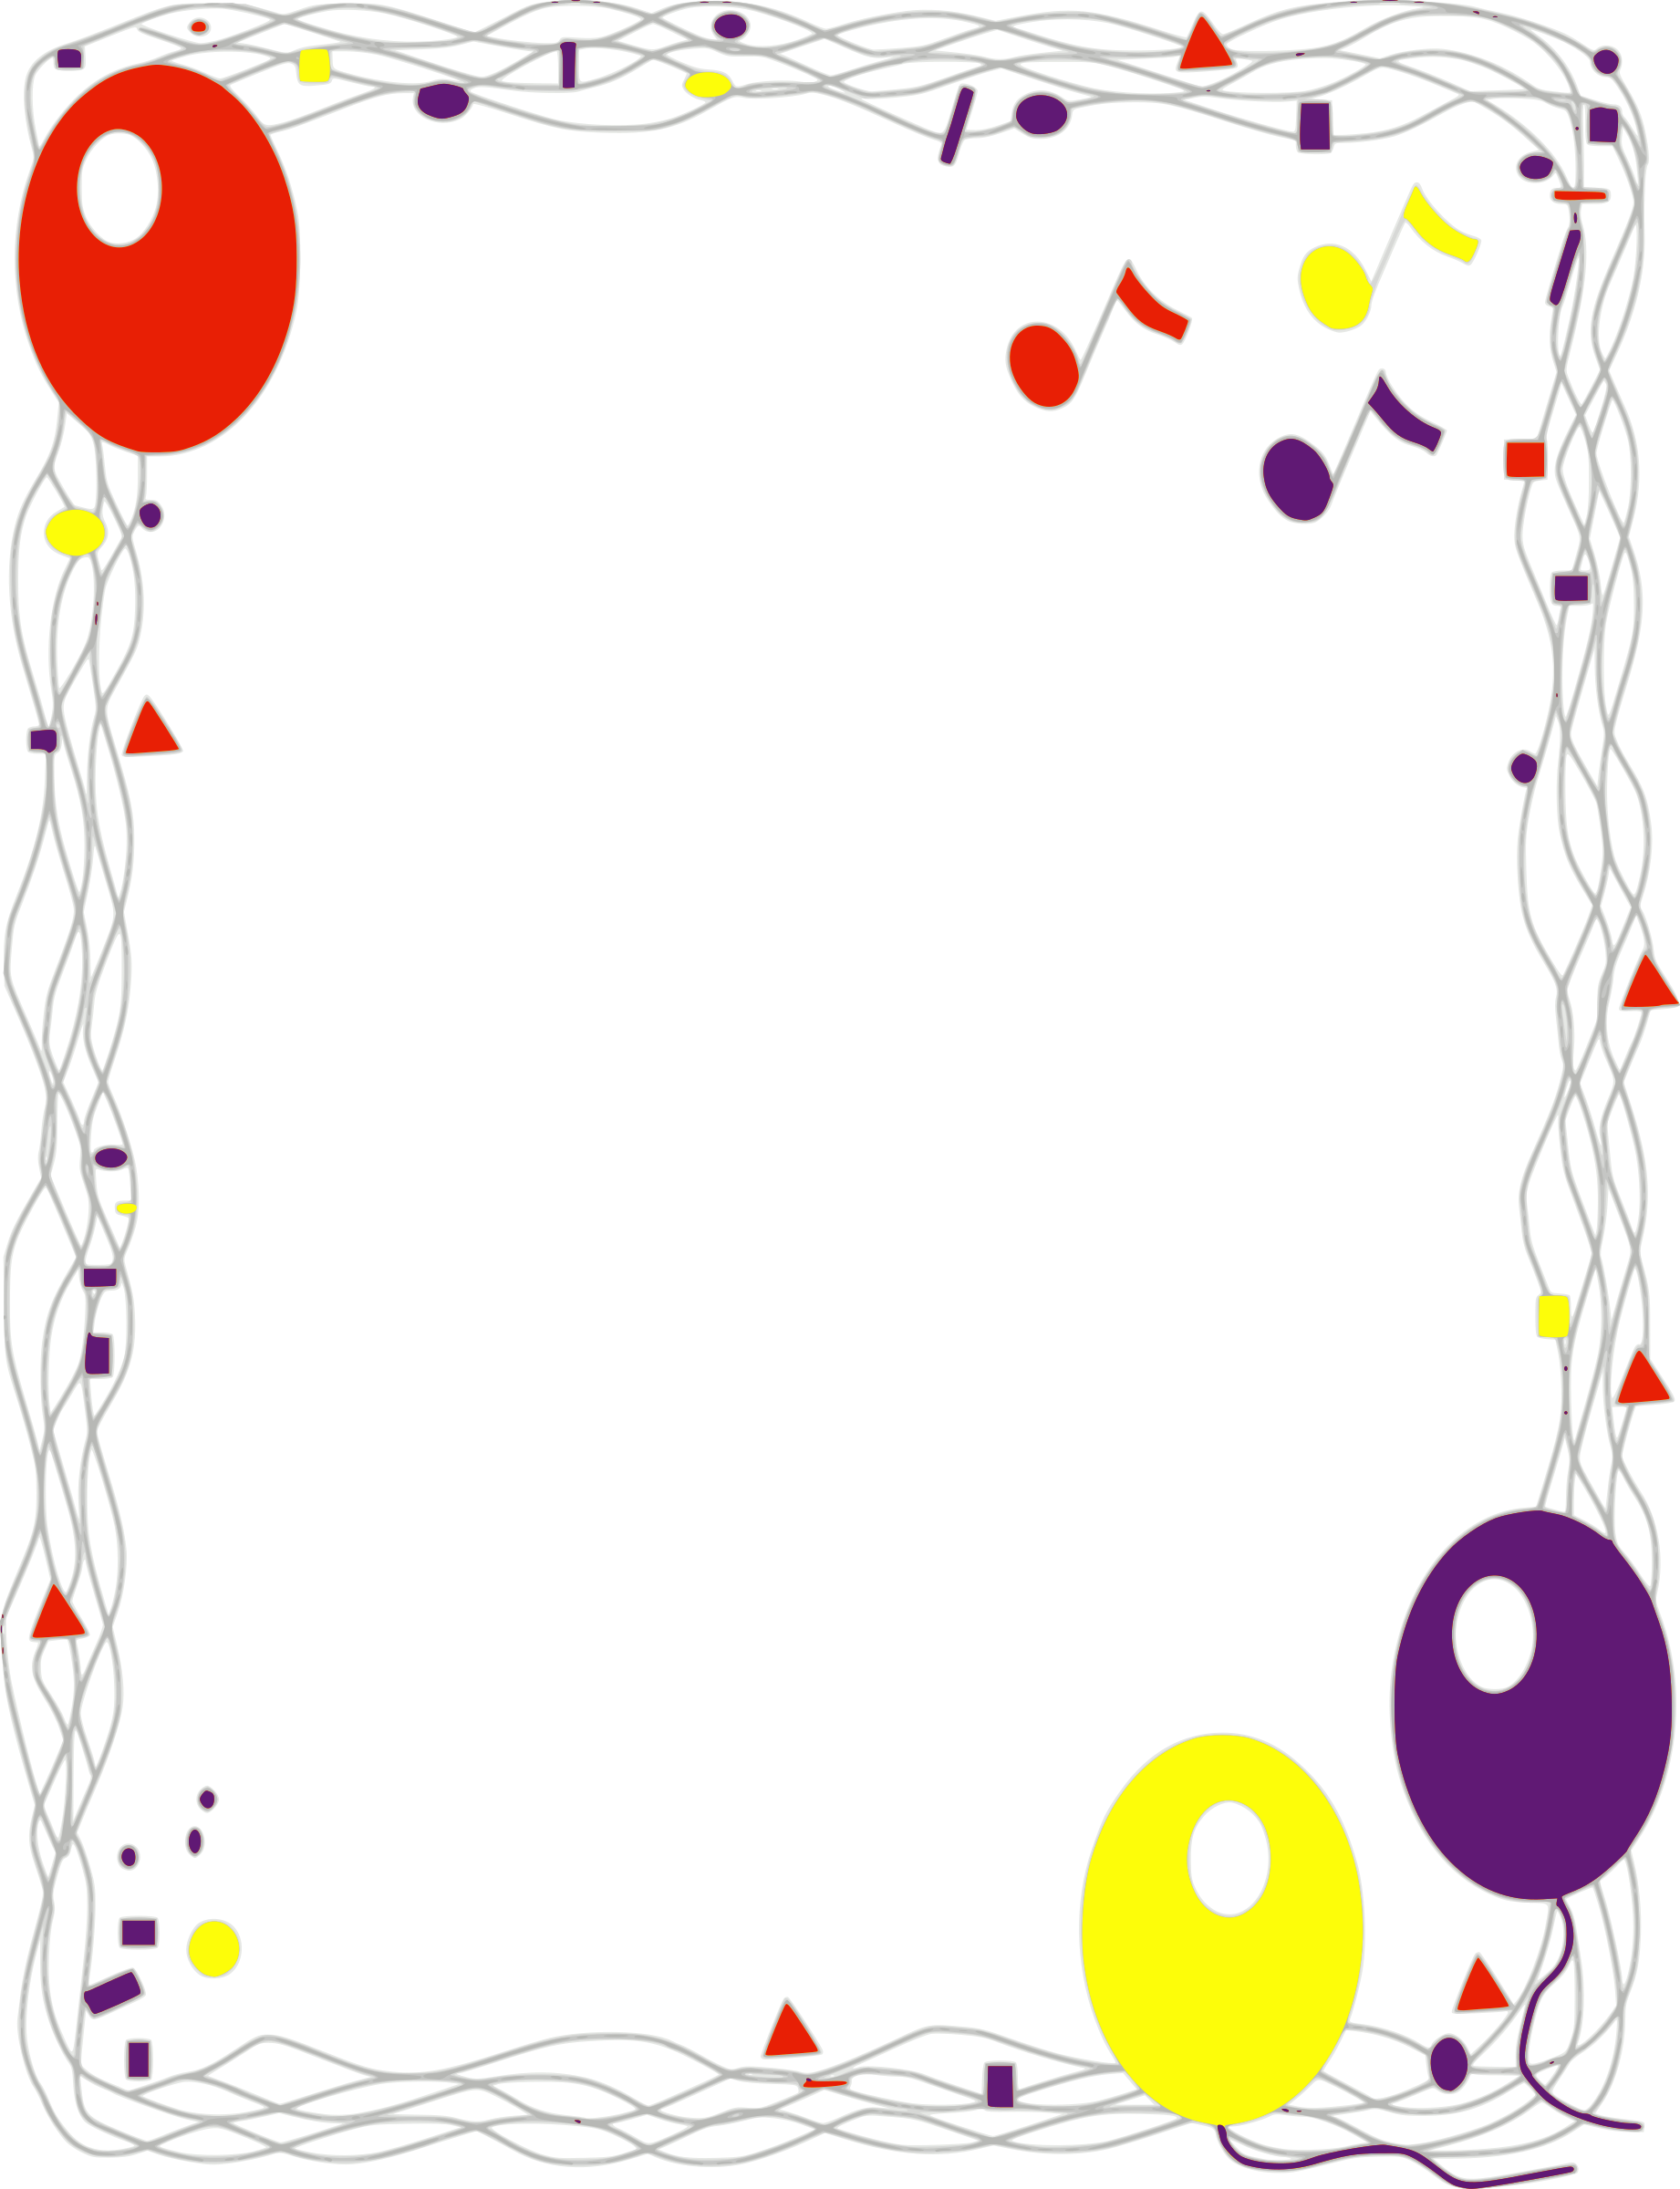 Balloon border png. Icons free and downloads